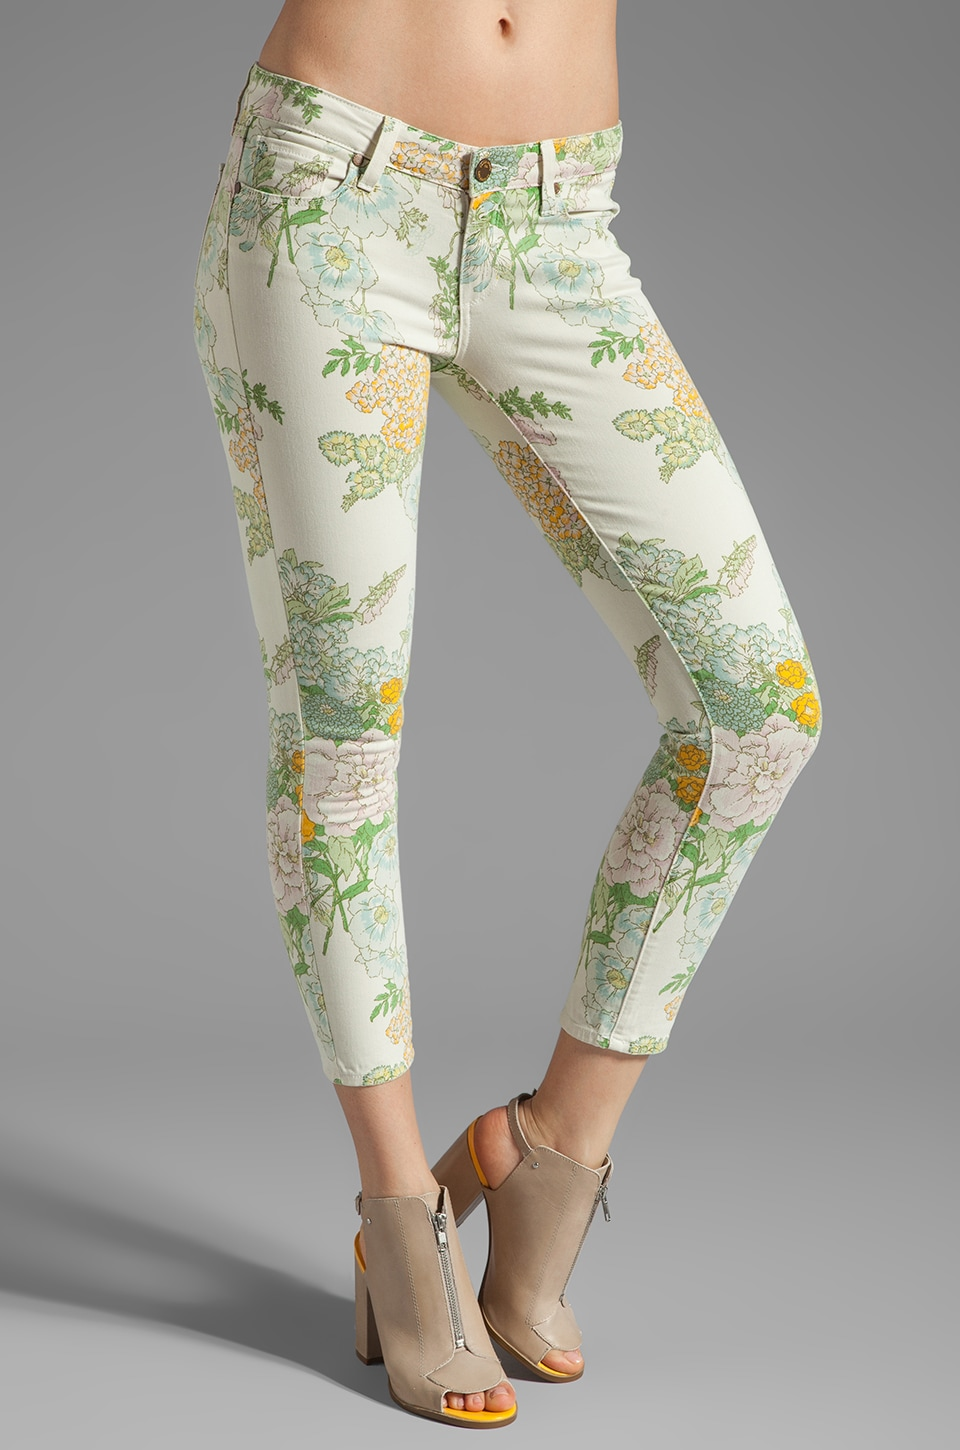 Paige Denim Verdugo Ankle in Flea Market Floral